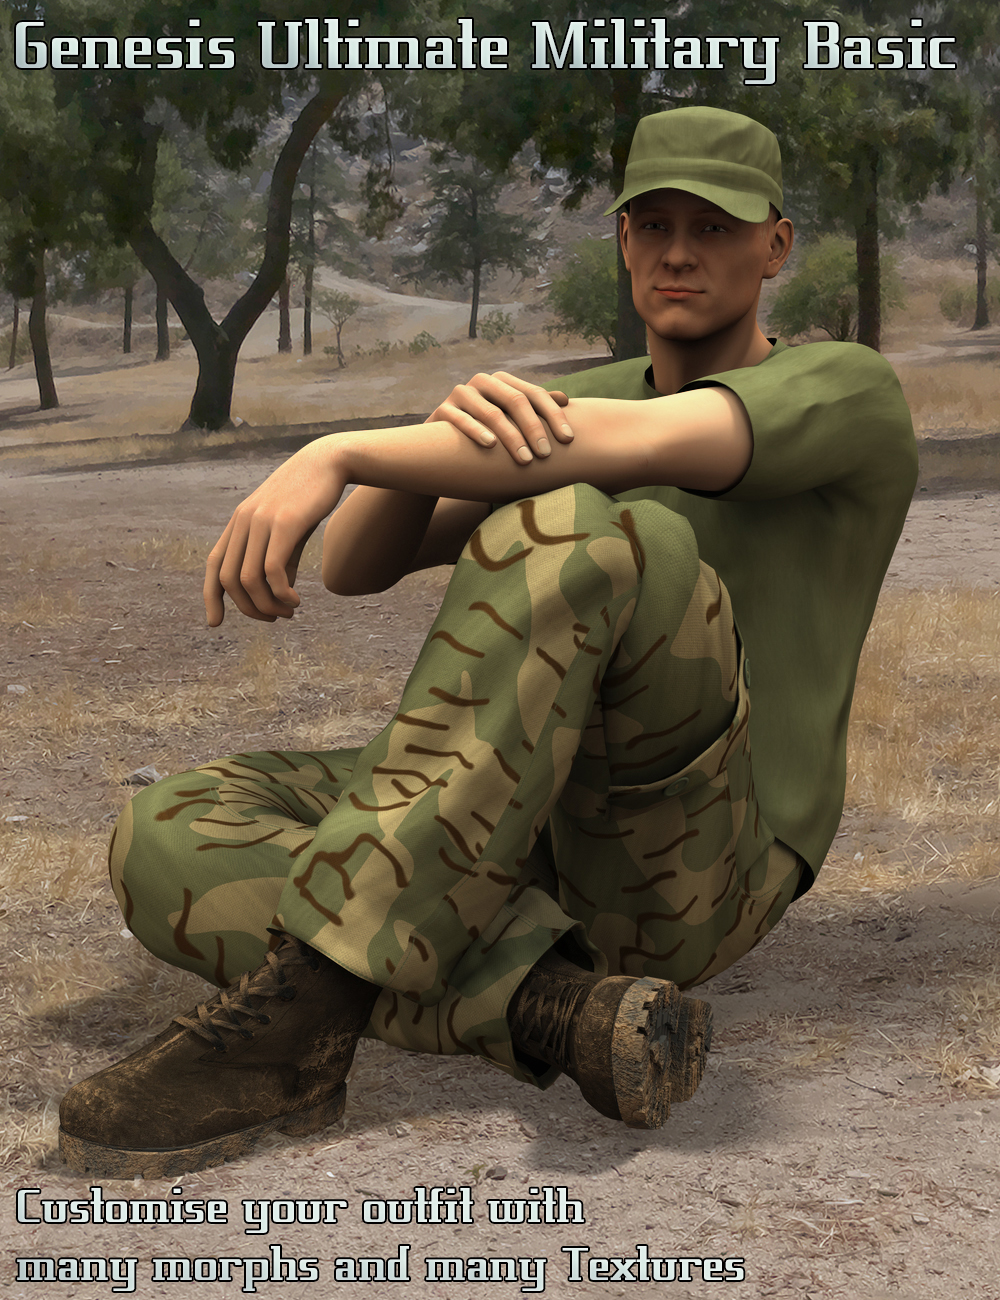 Genesis Ultimate Military Basic by: V3Digitimes, 3D Models by Daz 3D